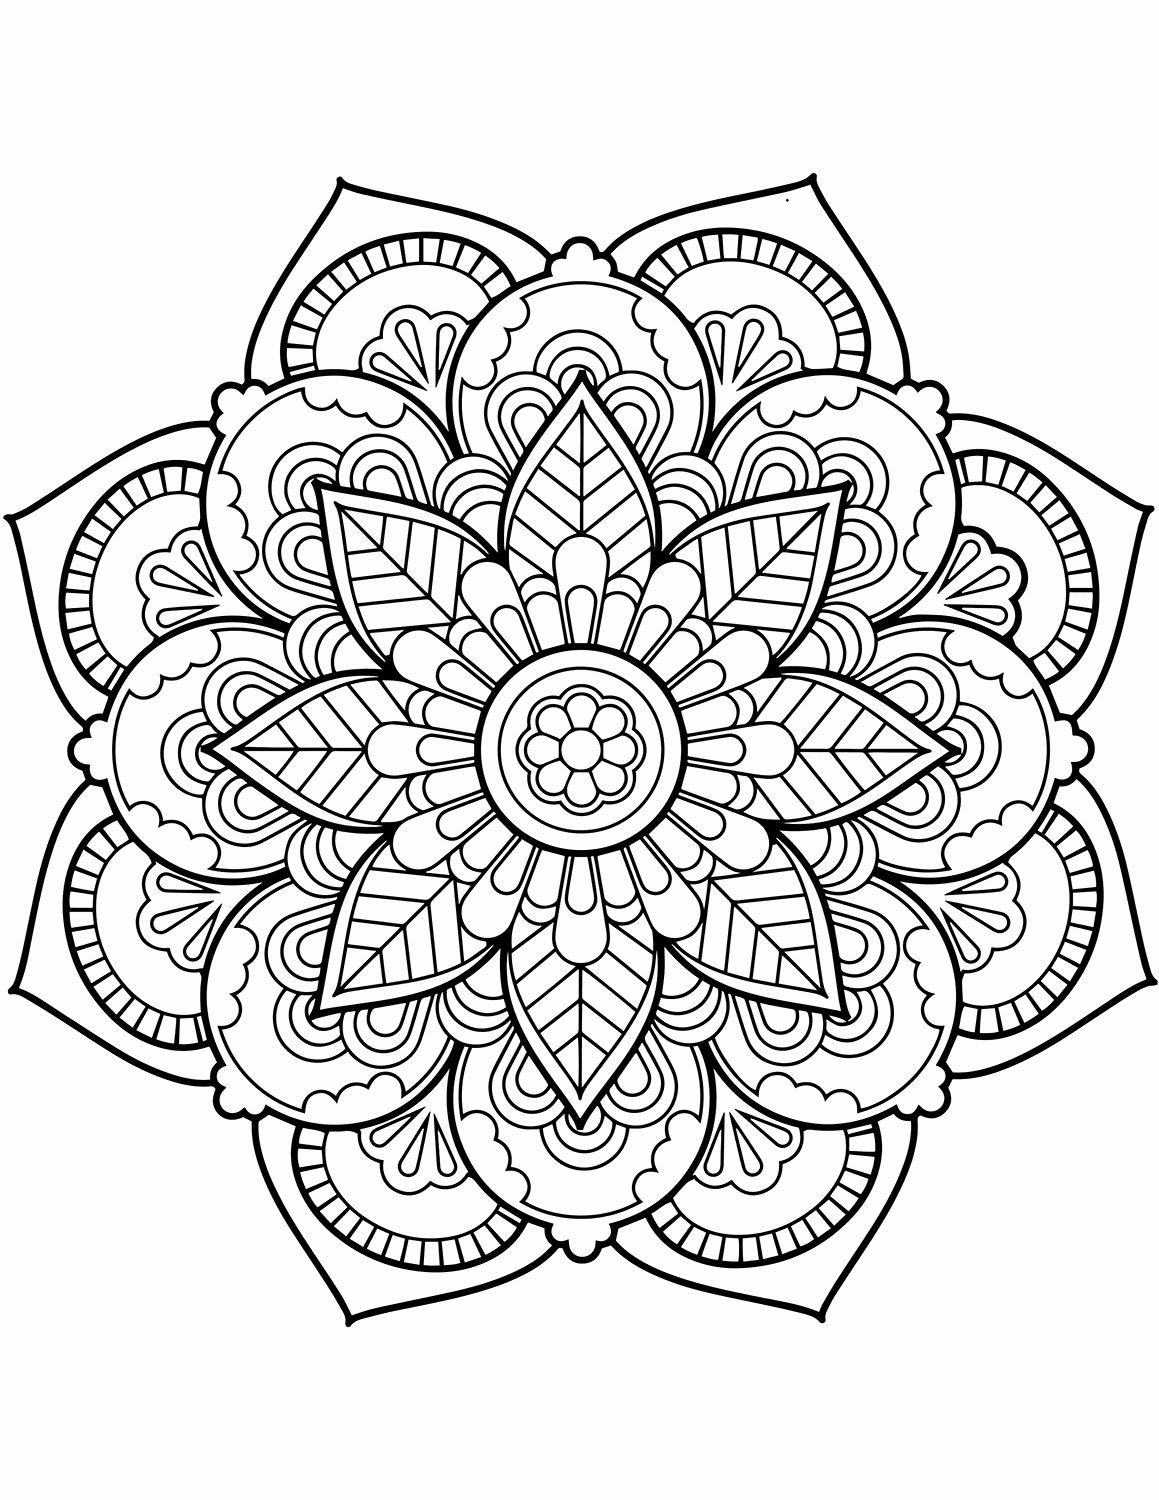 Coloring Book Flowers Printable Fresh Coloring Books Luxury Animal Mandala Coloring Pages E Flower Coloring Pages Mandala Coloring Pages Pattern Coloring Pages